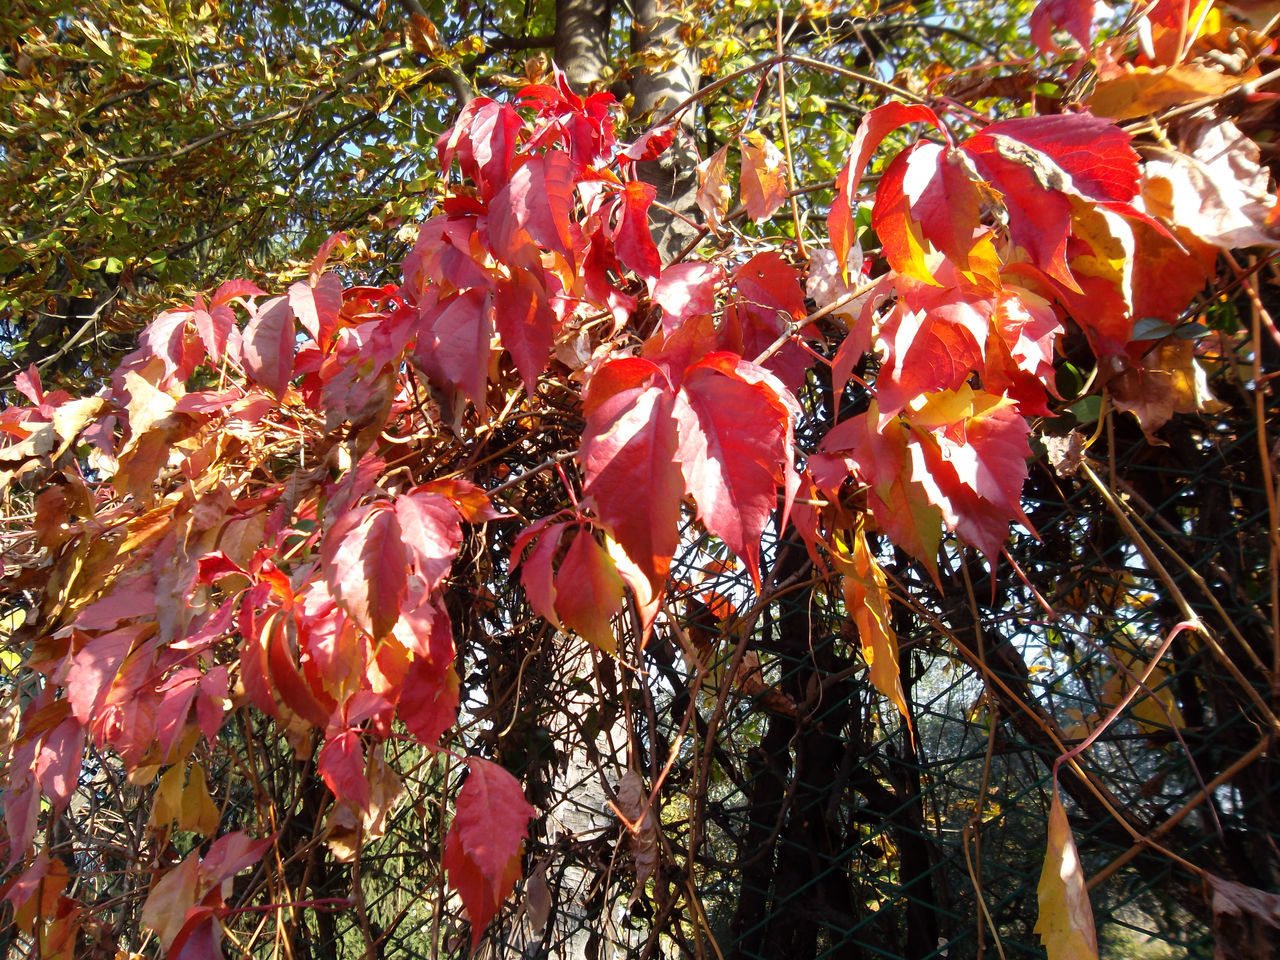 Autumn Autumn Colors Beauty In Nature Close-up Day EyeEm Nature Lover Foliage, Vegetation, Plants, Green, Leaves, Leafage, Undergrowth, Underbrush, Plant Life, Flora Fragility Freshness Growth Leaf Nature No People Outdoors Plants Red Leafs Sunlight Sunlight And Shadow Tree